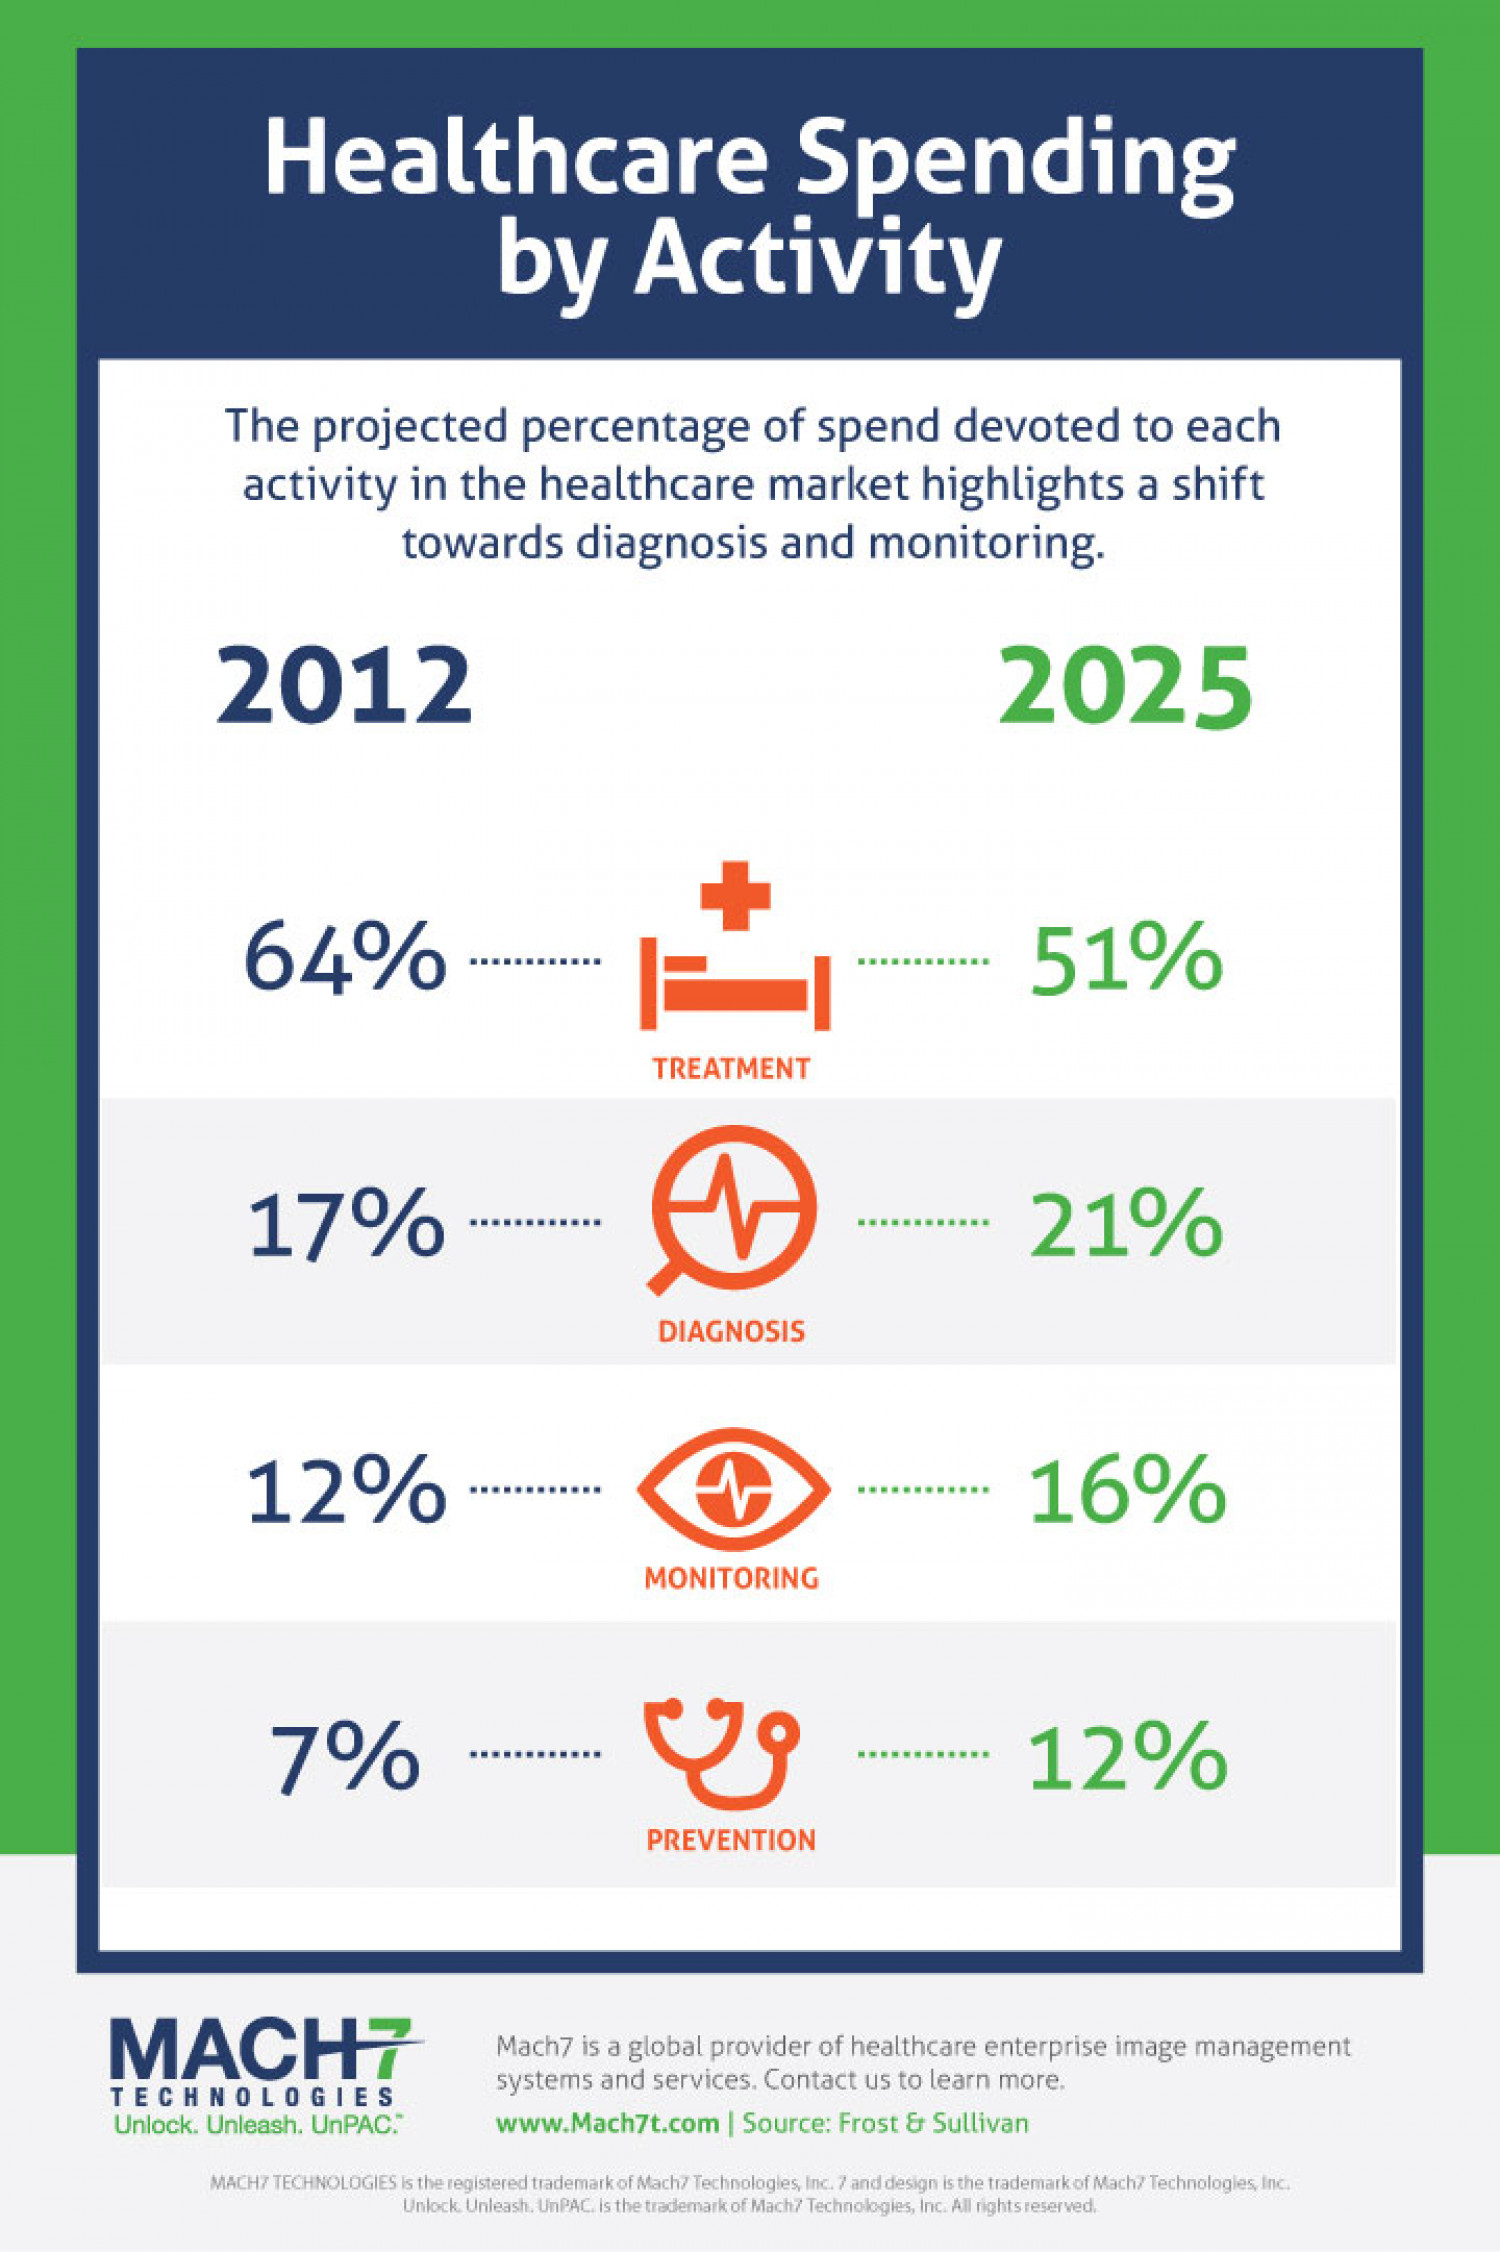 Healthcare Spending by Activity Infographic